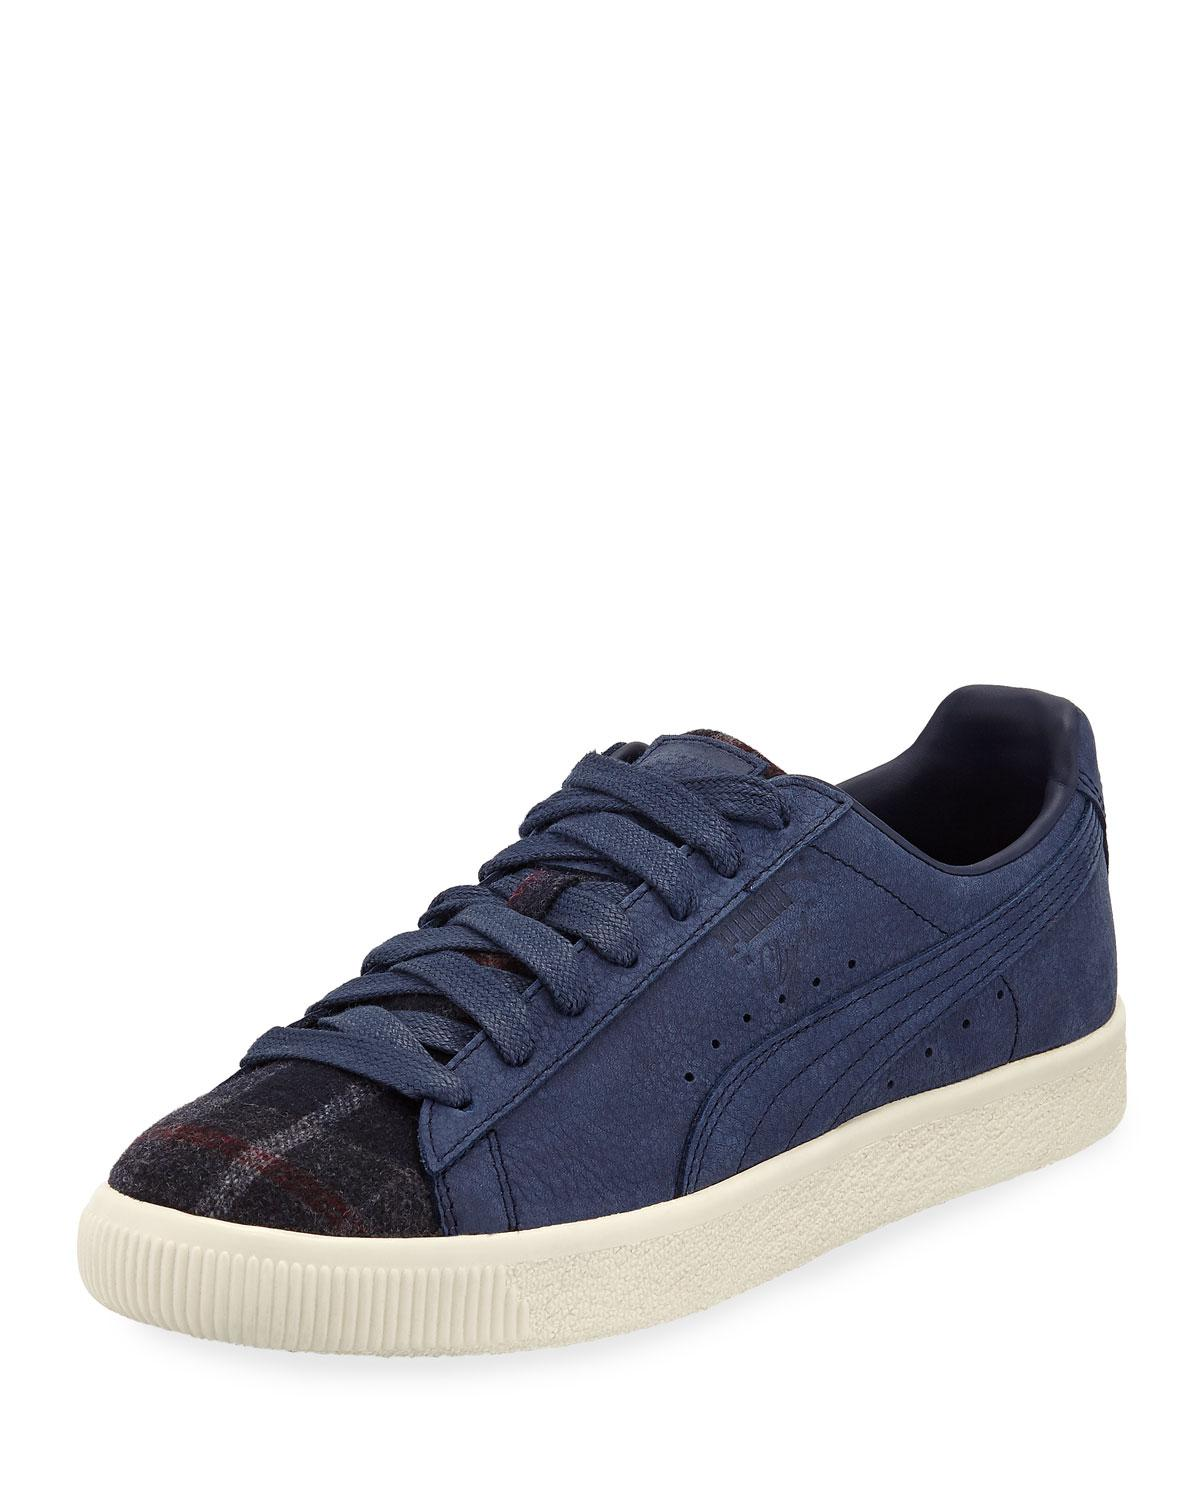 a0f5fca4539d Lyst - PUMA Men s Clyde Plaid suede Low-top Sneakers in Blue for Men